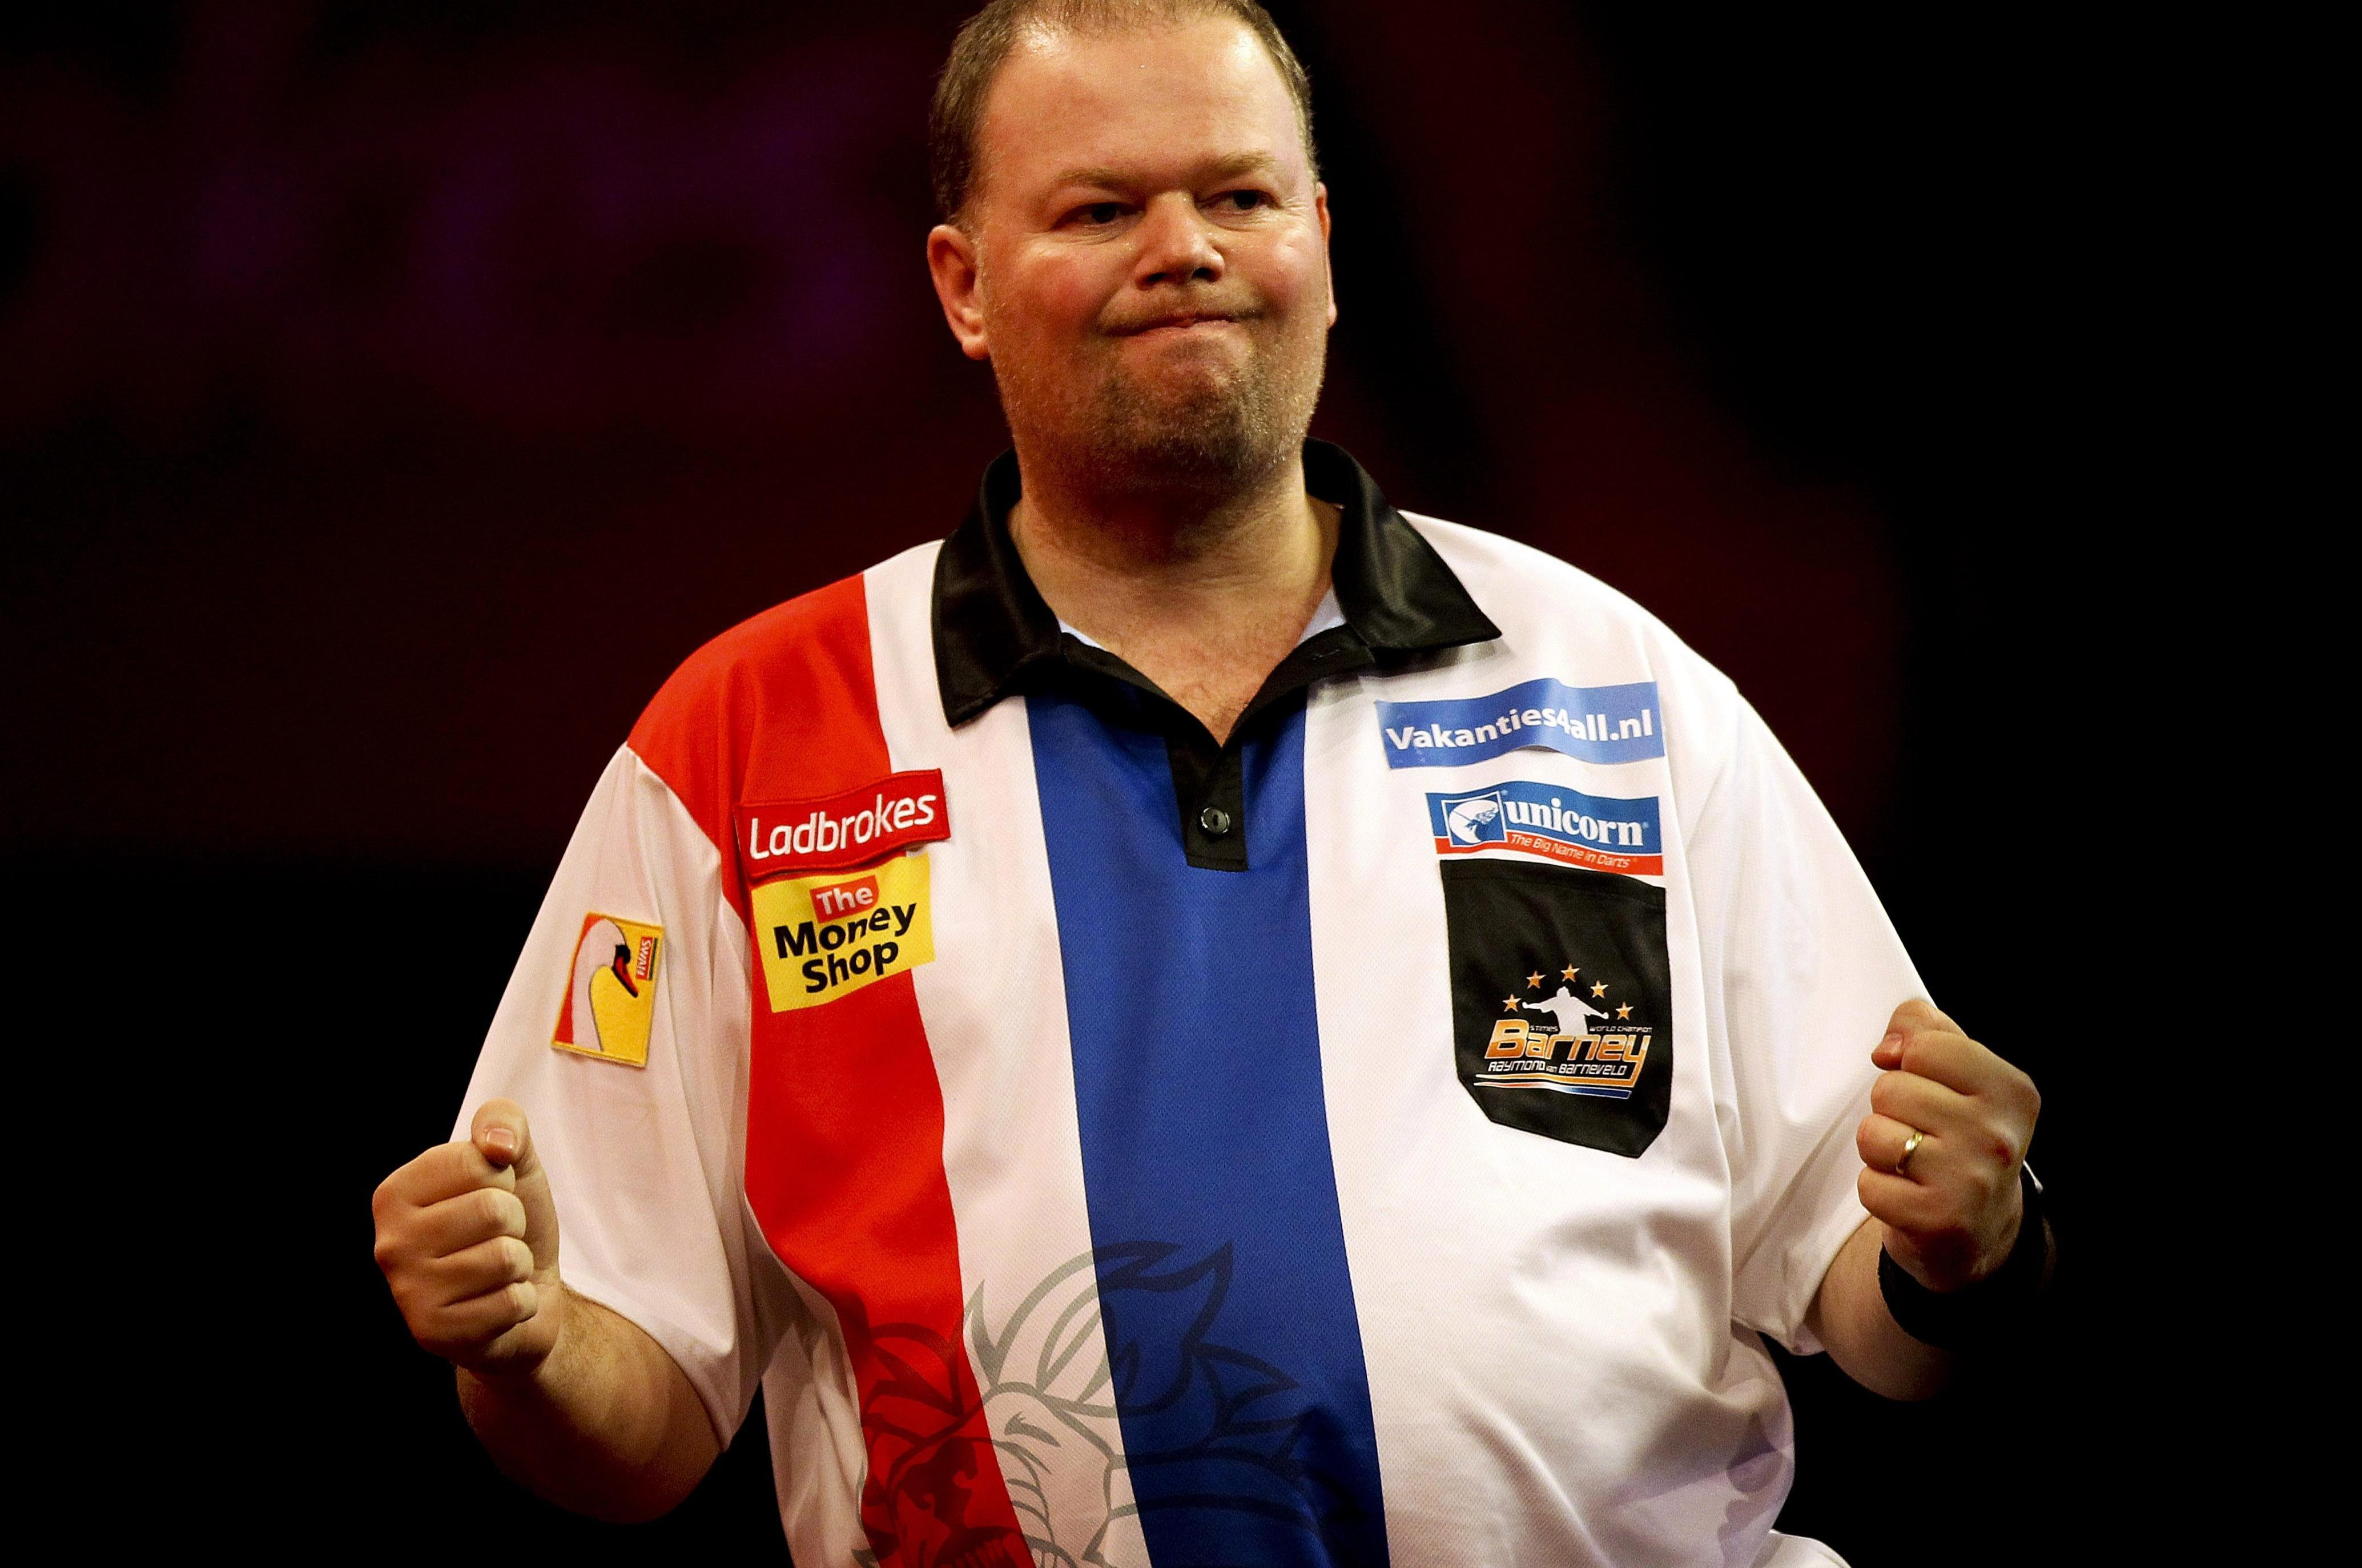 Van Barneveld has won the World Cup of Darts on four occasions